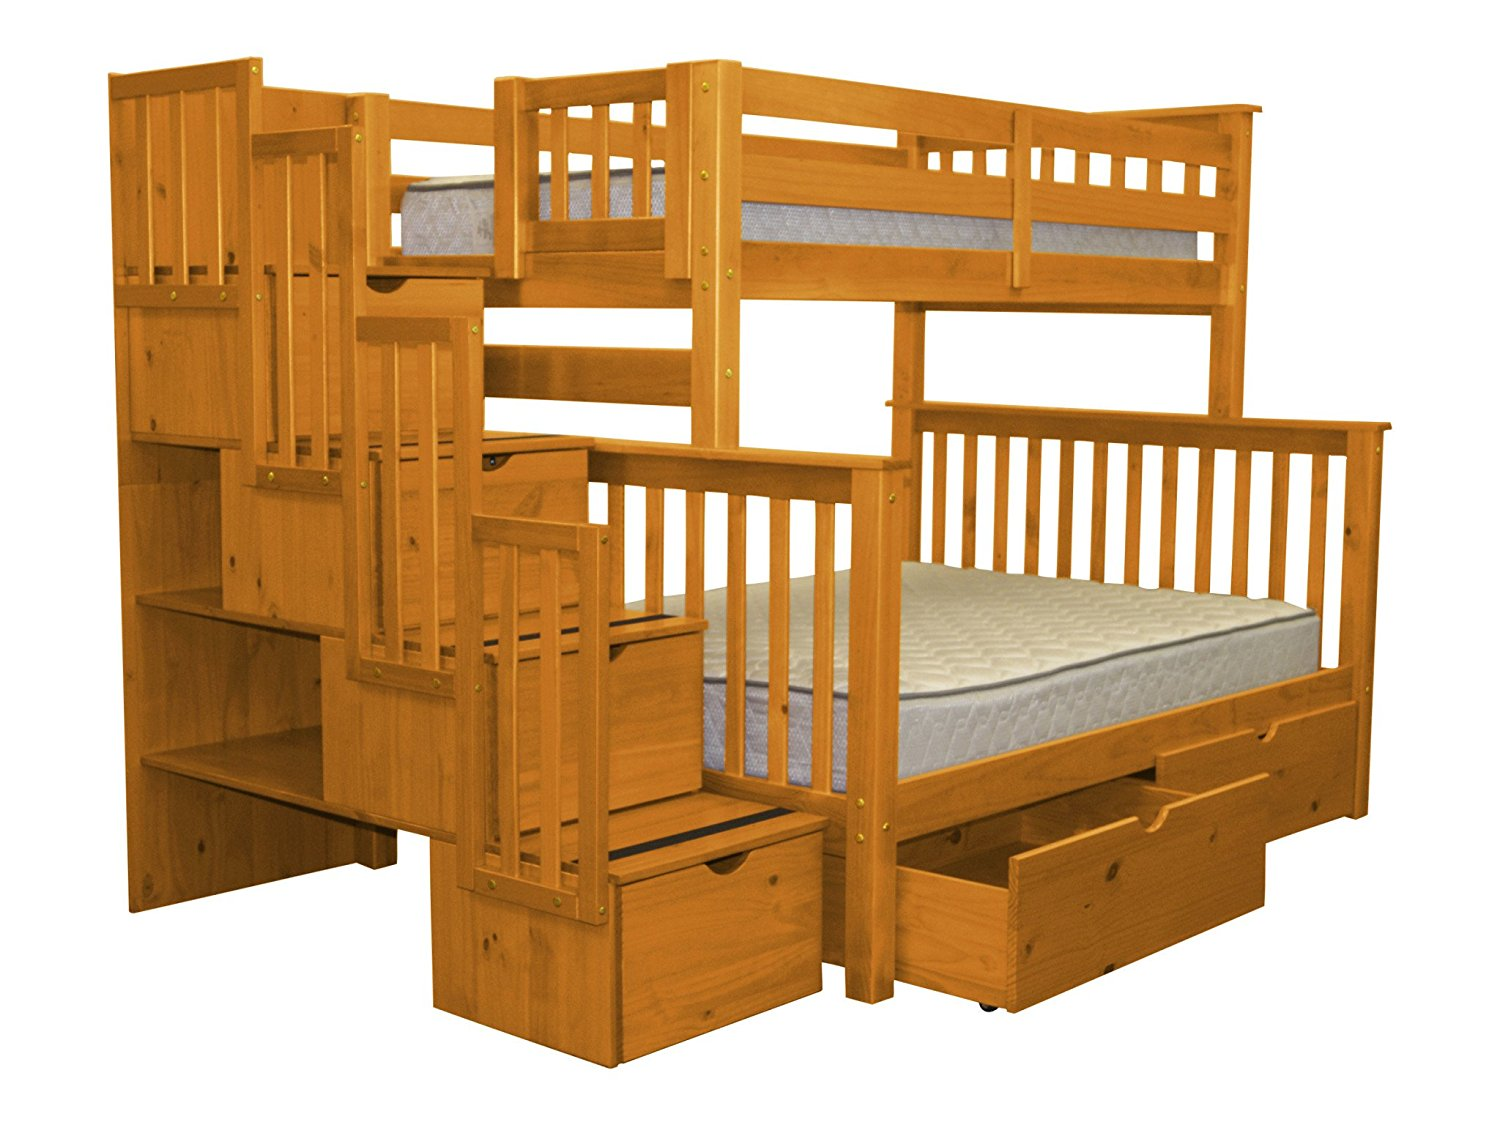 Bedz King Stairway Bunk Bed Twin over Full with 4 Drawers in the Steps and 2 Under Bed Drawers, Honey